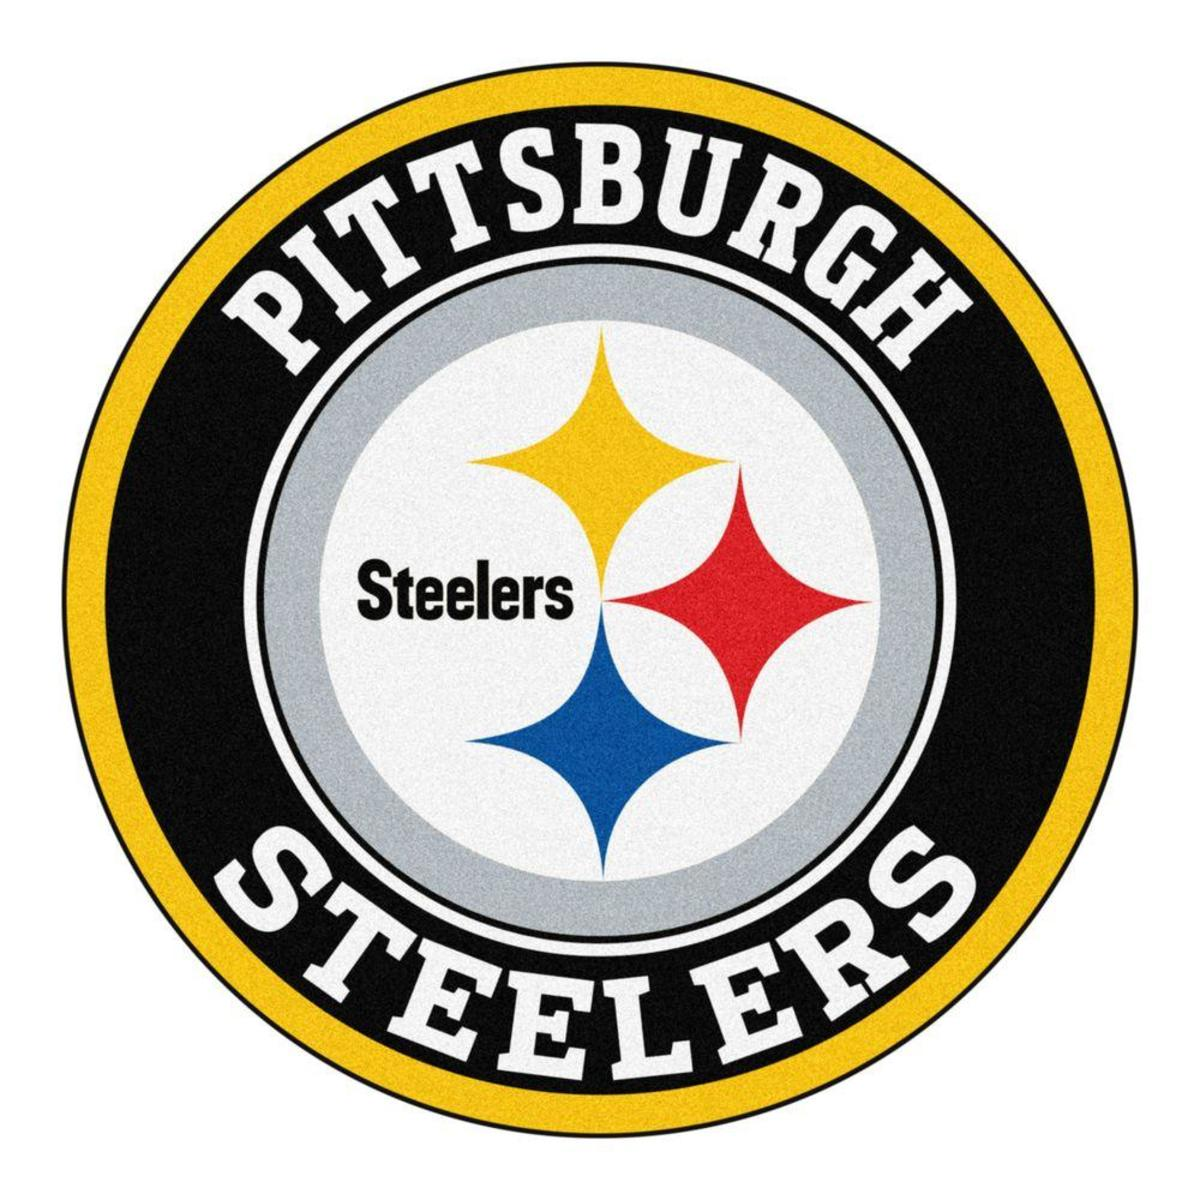 In 1980, the Pittsburgh Steelers became the first NFL franchise to win four Super Bowls.